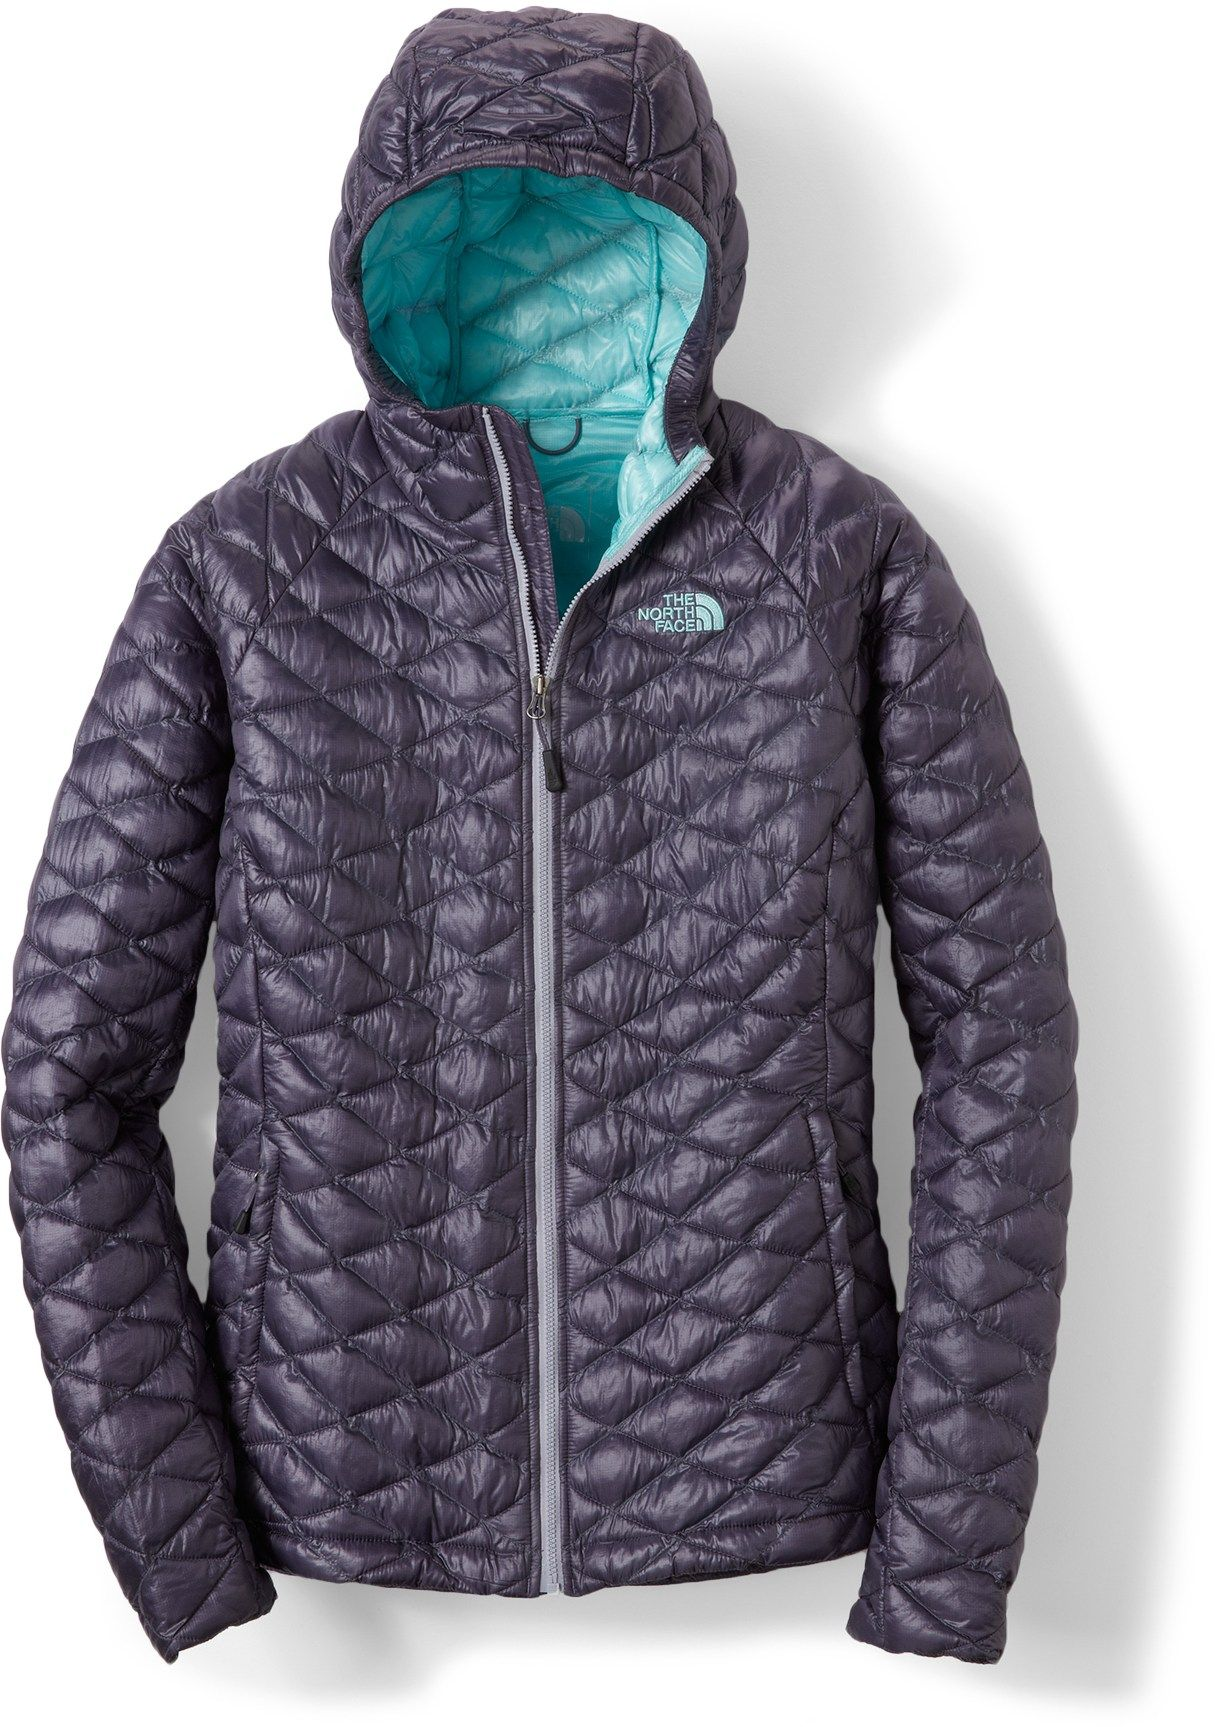 The North Face ThermoBall Hoodie Jacket - Women s - Free Shipping at  REI.com - greystone blue   sports chalet 07083e46e4a0